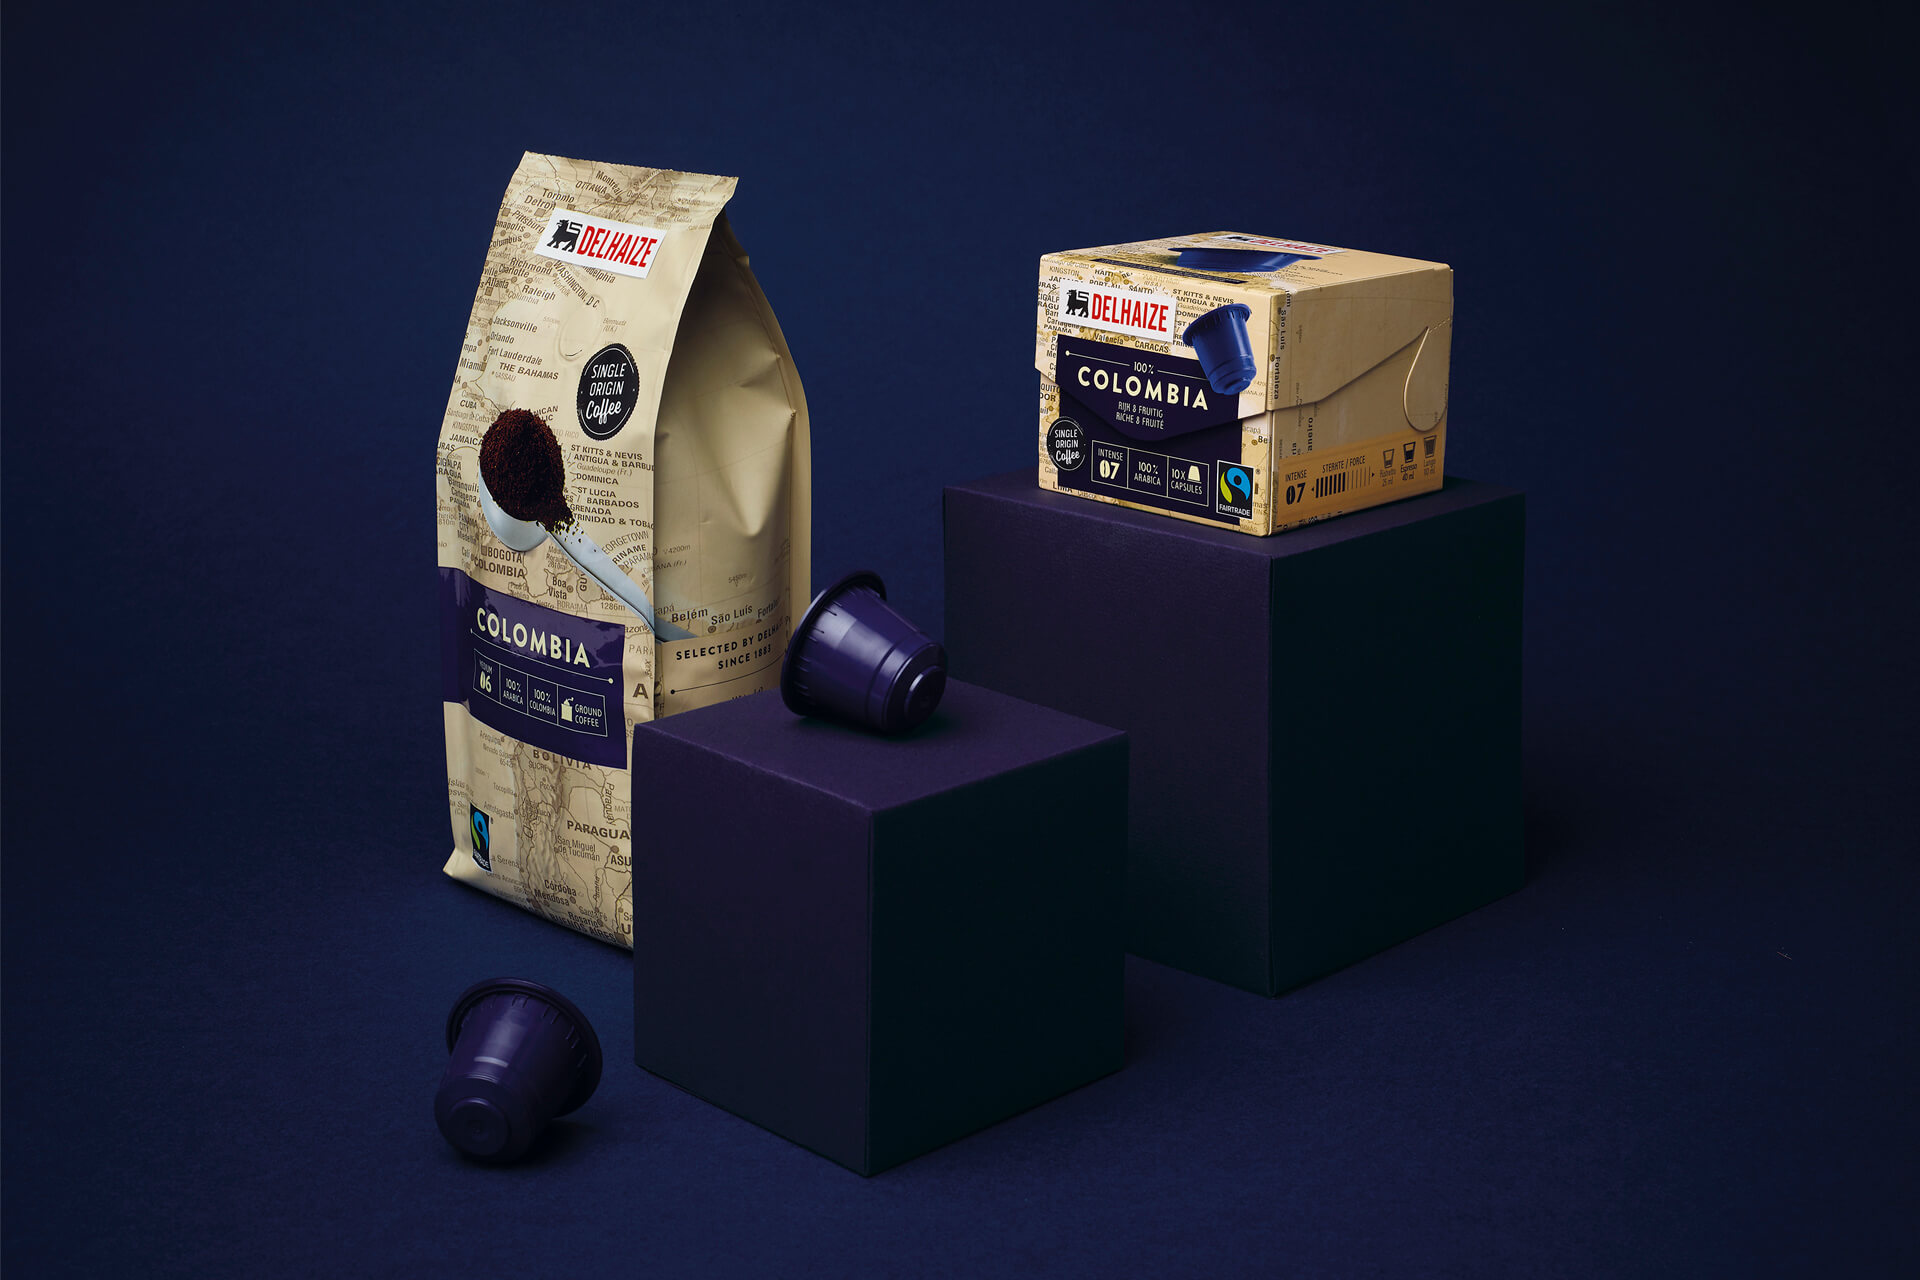 Emballage café pour Delhaize par DesignRepublic Bruxelles - Delhaize coffee packaging design